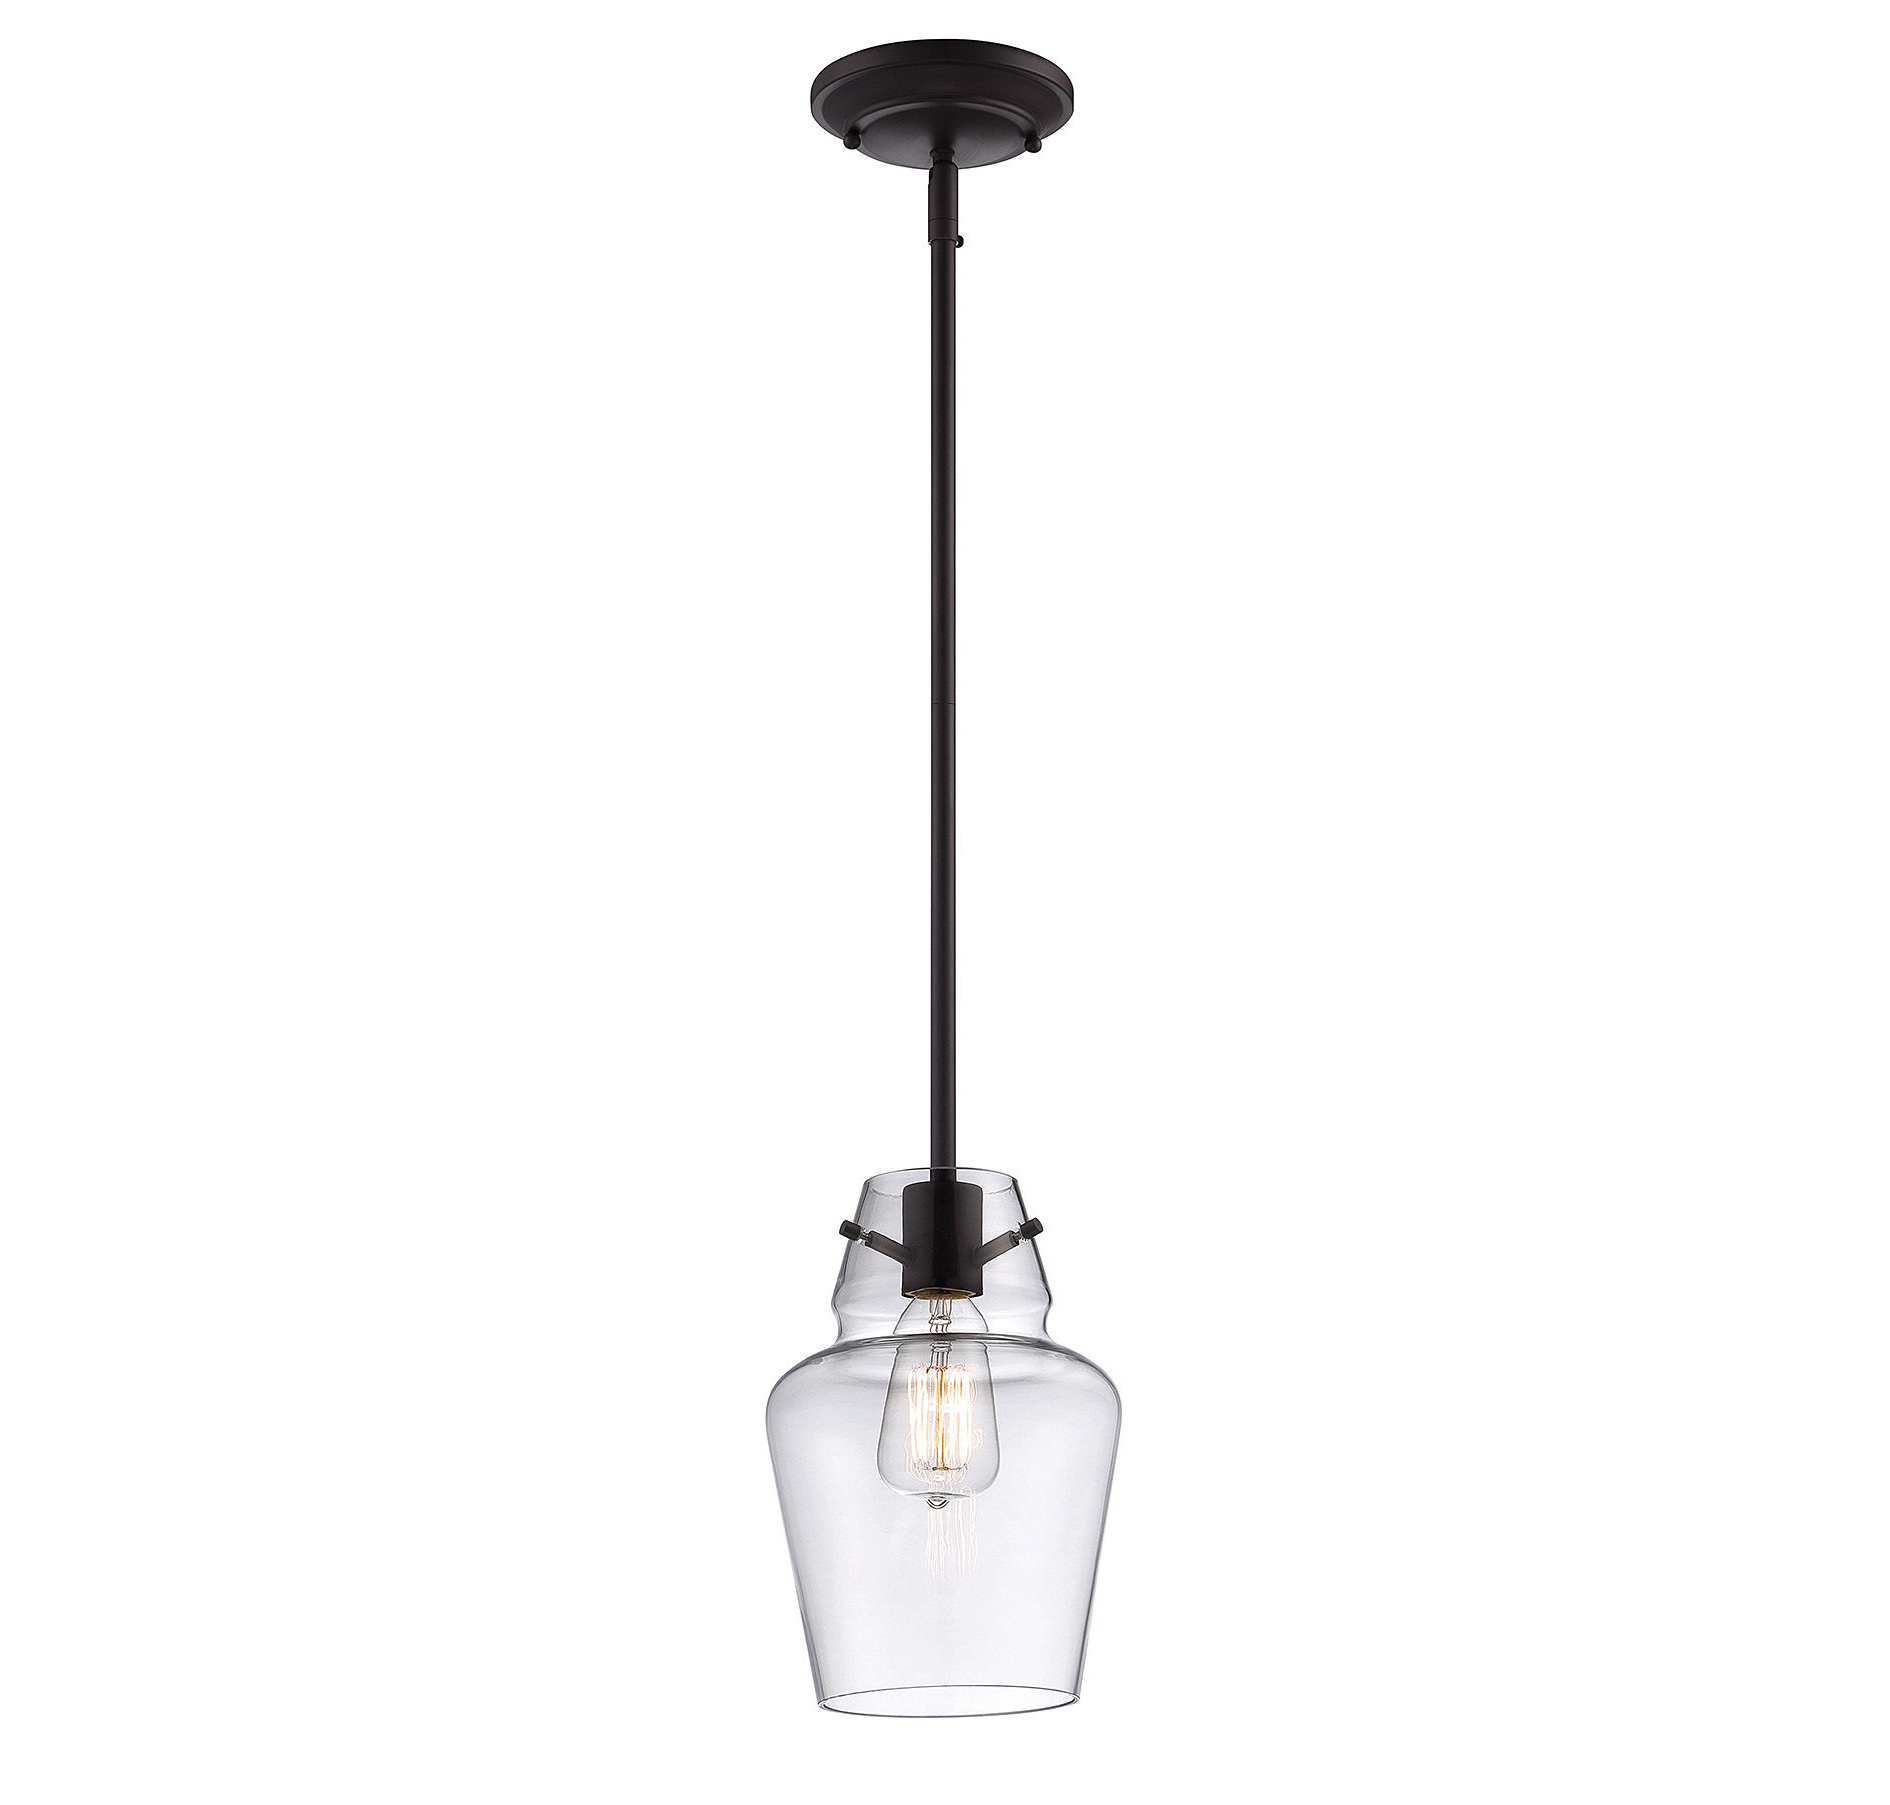 Erico 1 Light Single Bell Pendants In Most Up To Date Roslindale 1 Light Single Bell Pendant (View 4 of 20)